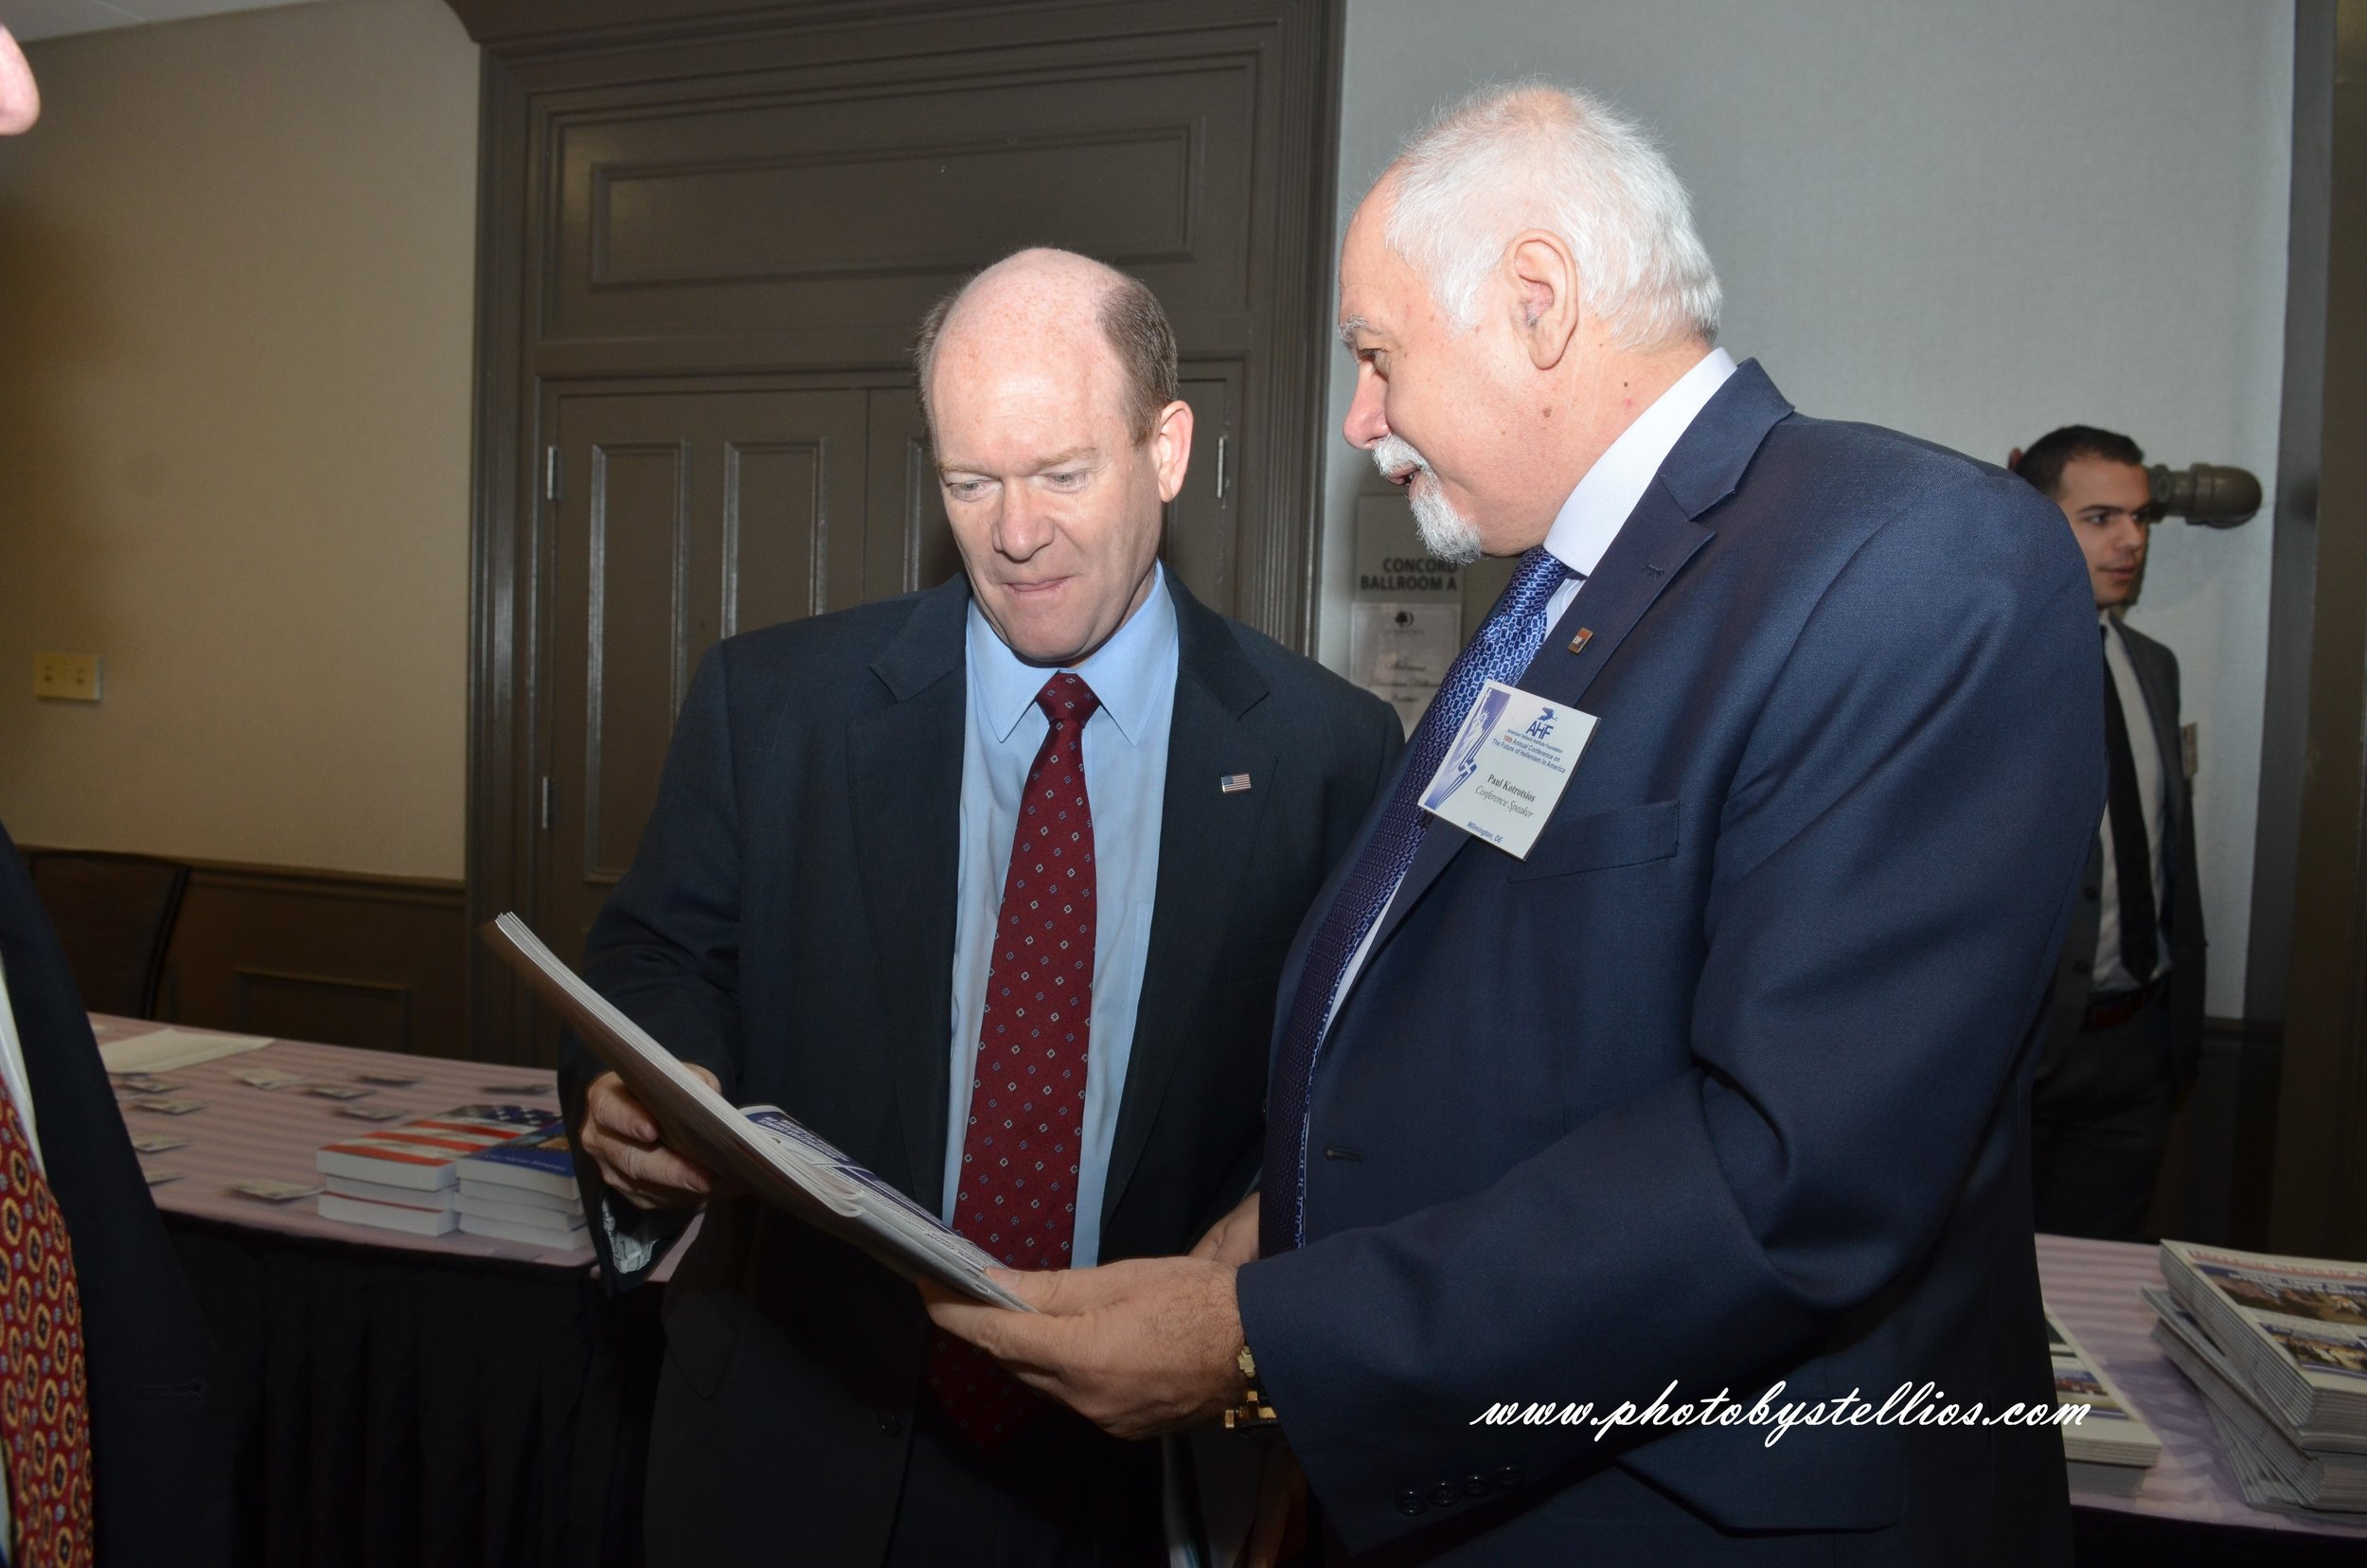 Paul Kotrotsios presents a copy of The Hellenic News of America to Senator Chris Coons.